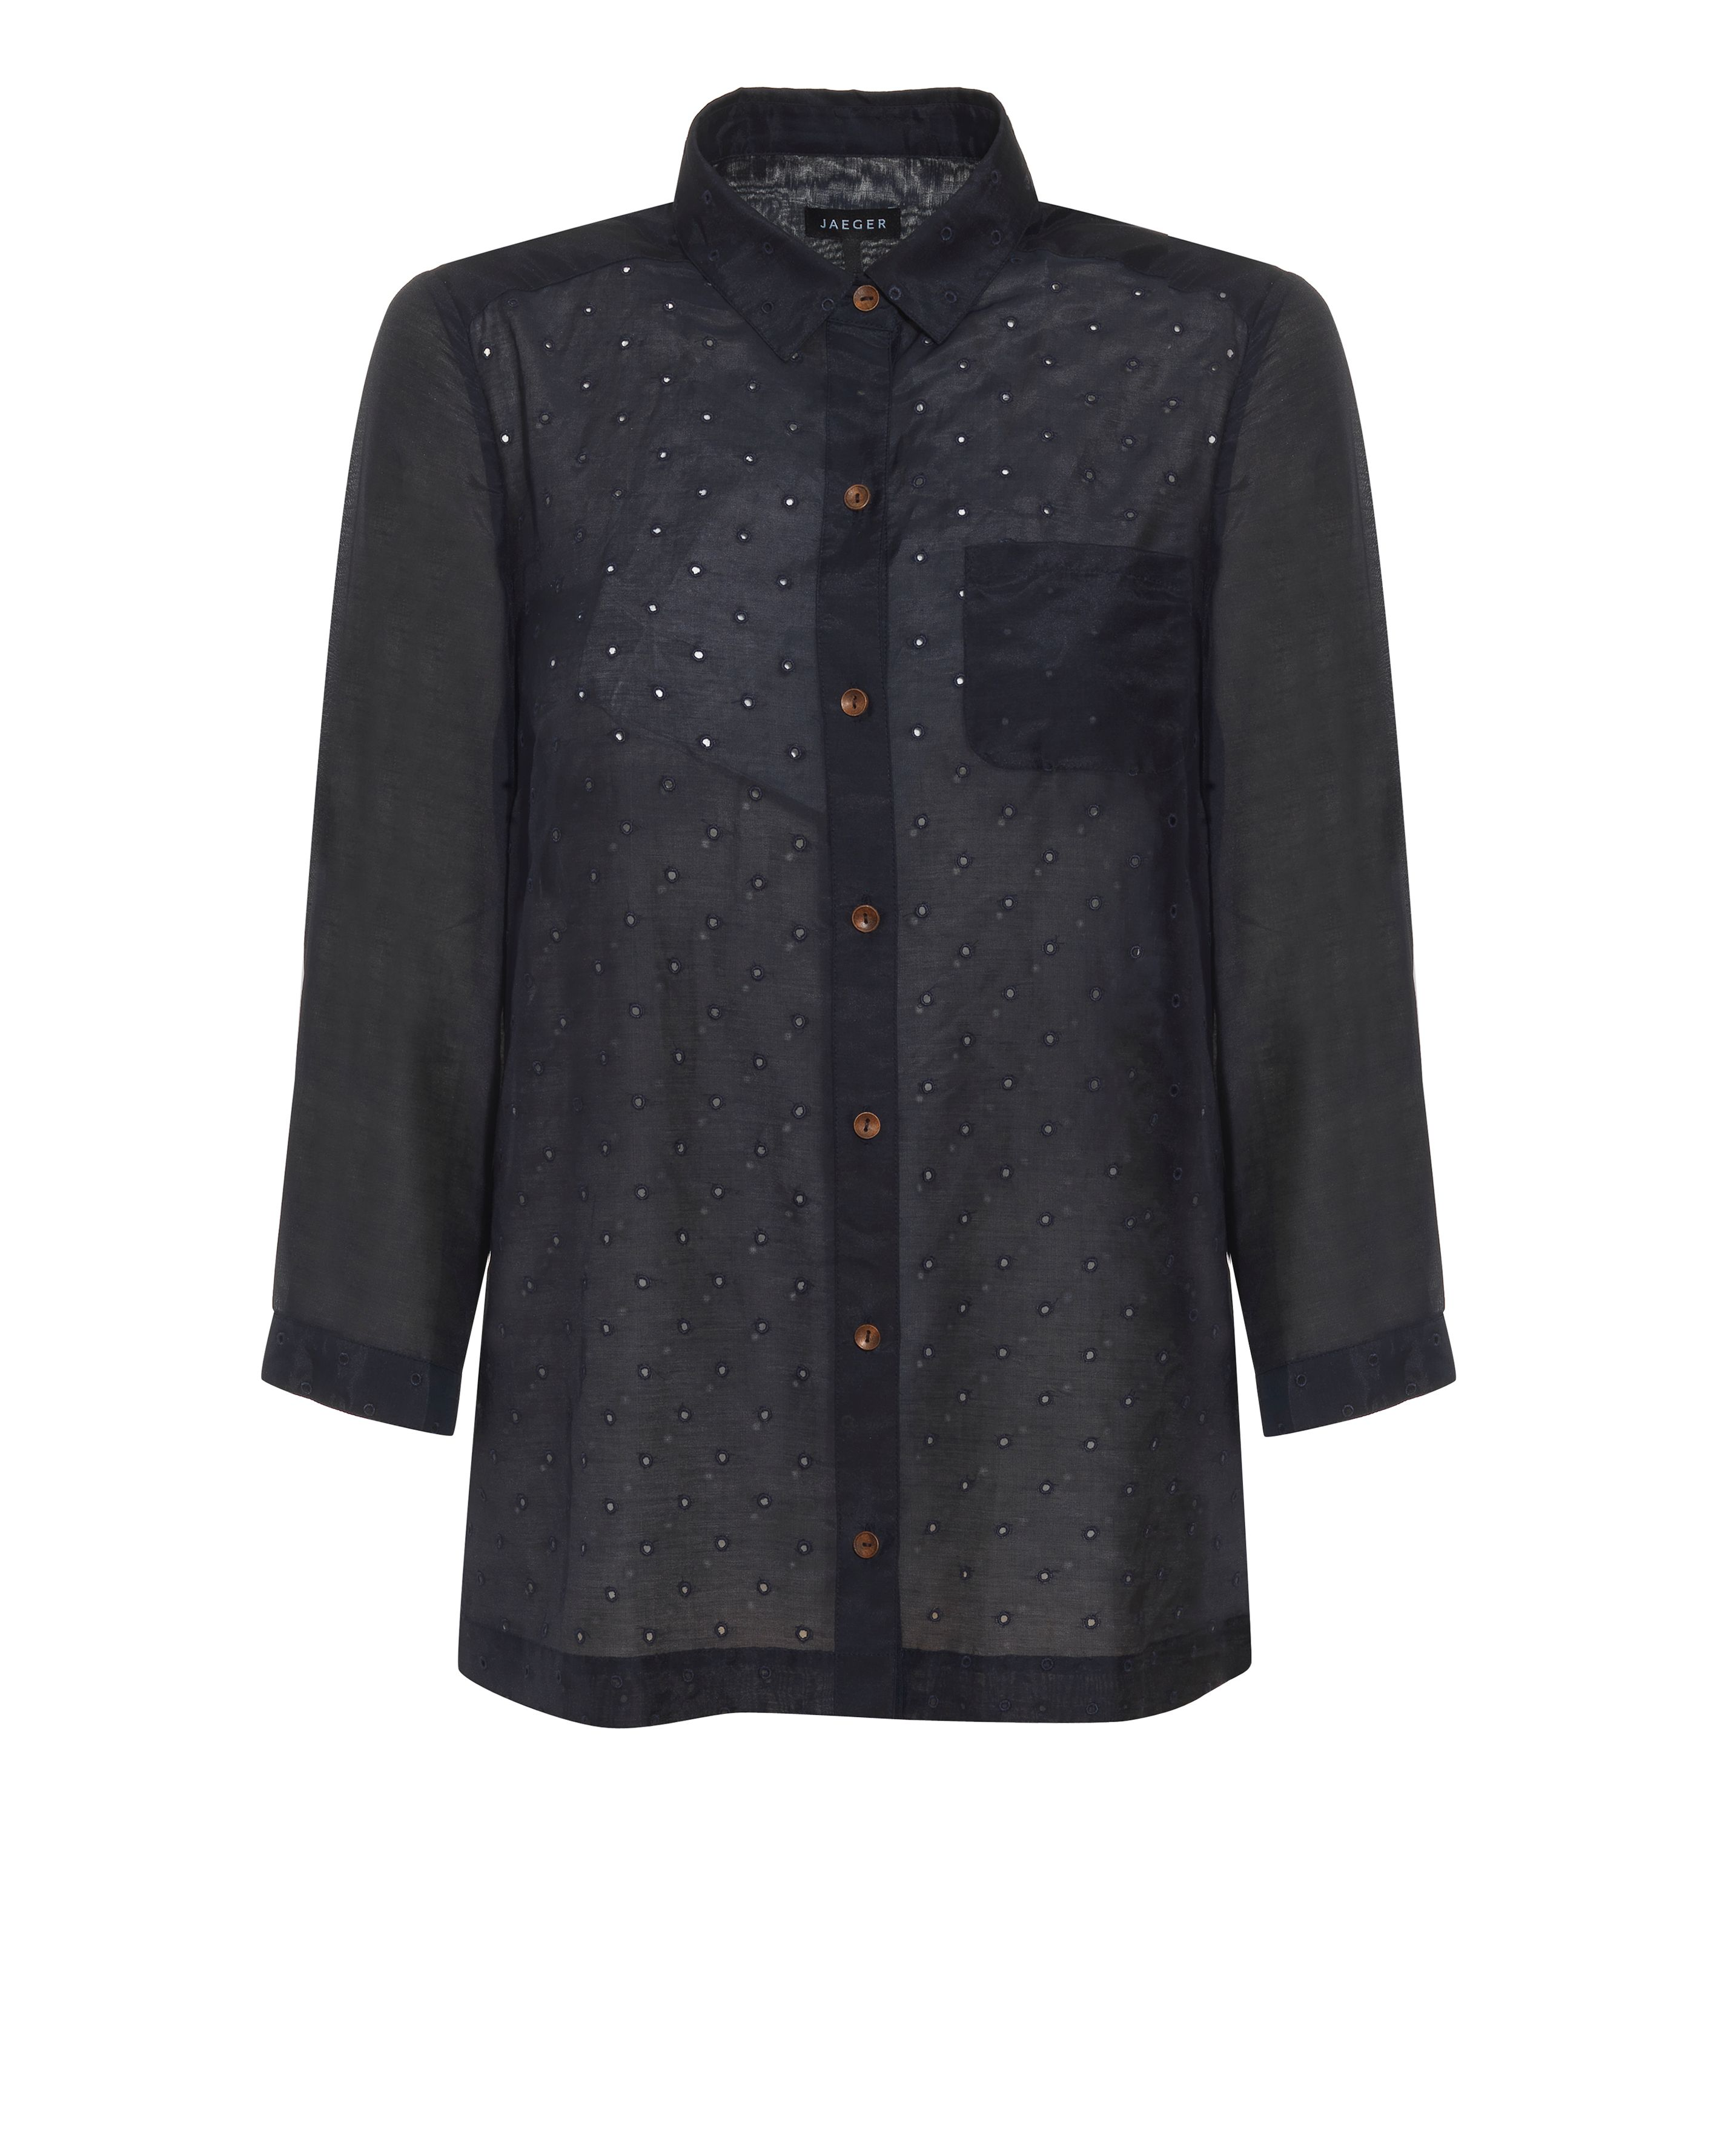 Jaeger Womens Jaeger Spot embroidered blouse, Navy product image